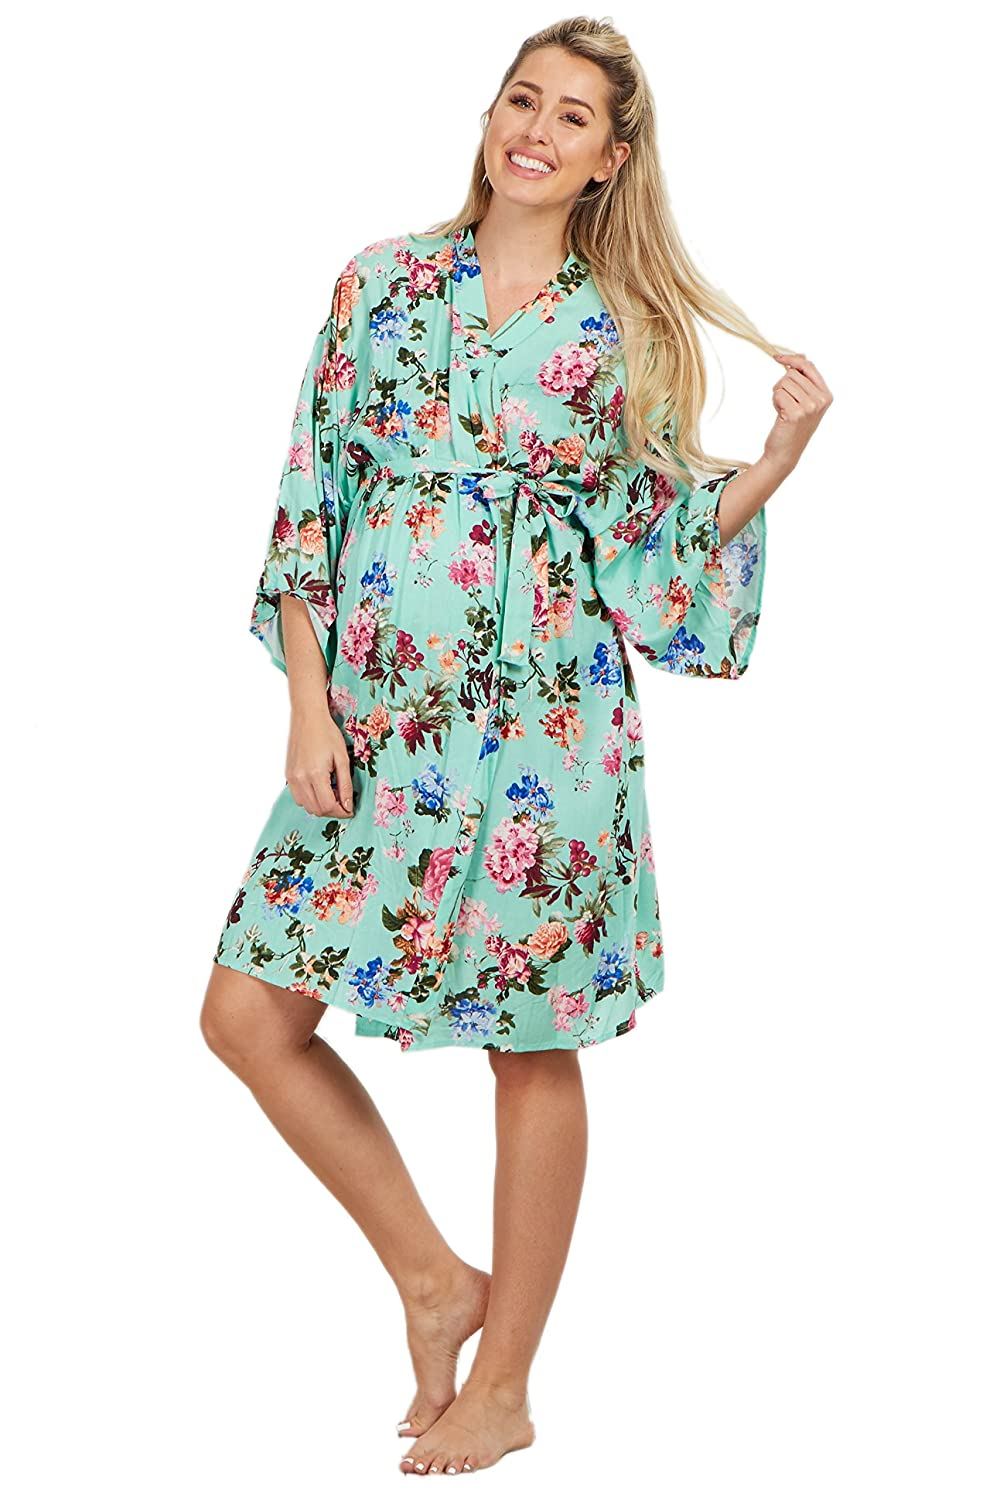 f7a6852e38ca6 PinkBlush Maternity Mint Floral Delivery/Nursing Maternity Robe, XL at  Amazon Women's Clothing store: